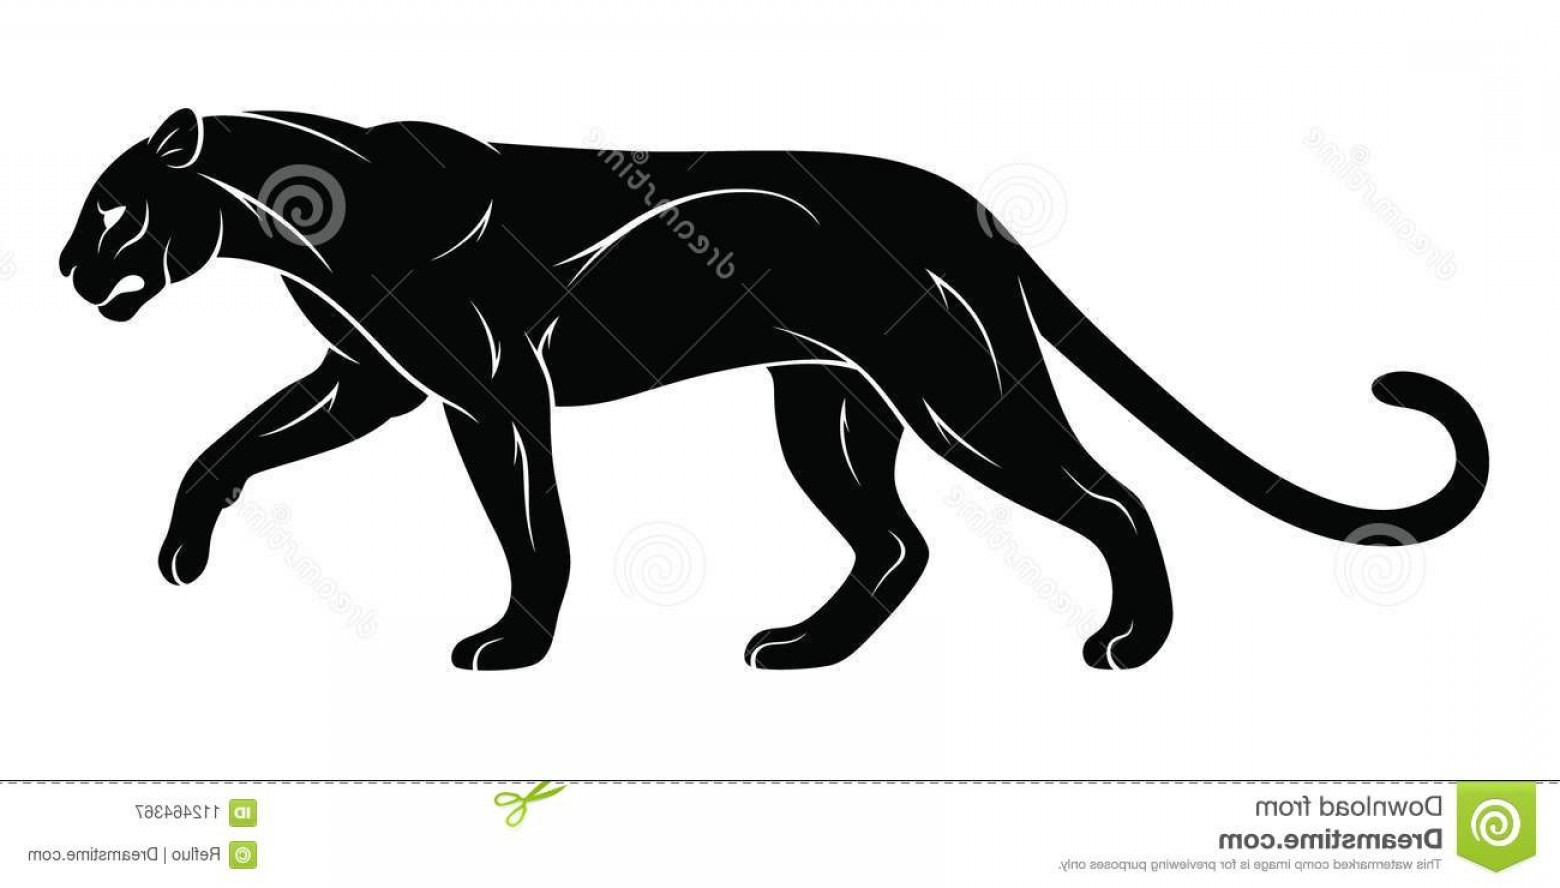 Panther Silhouette Vector: Walking Panther Black Walking Panther Silhouette Vector Illustration Image